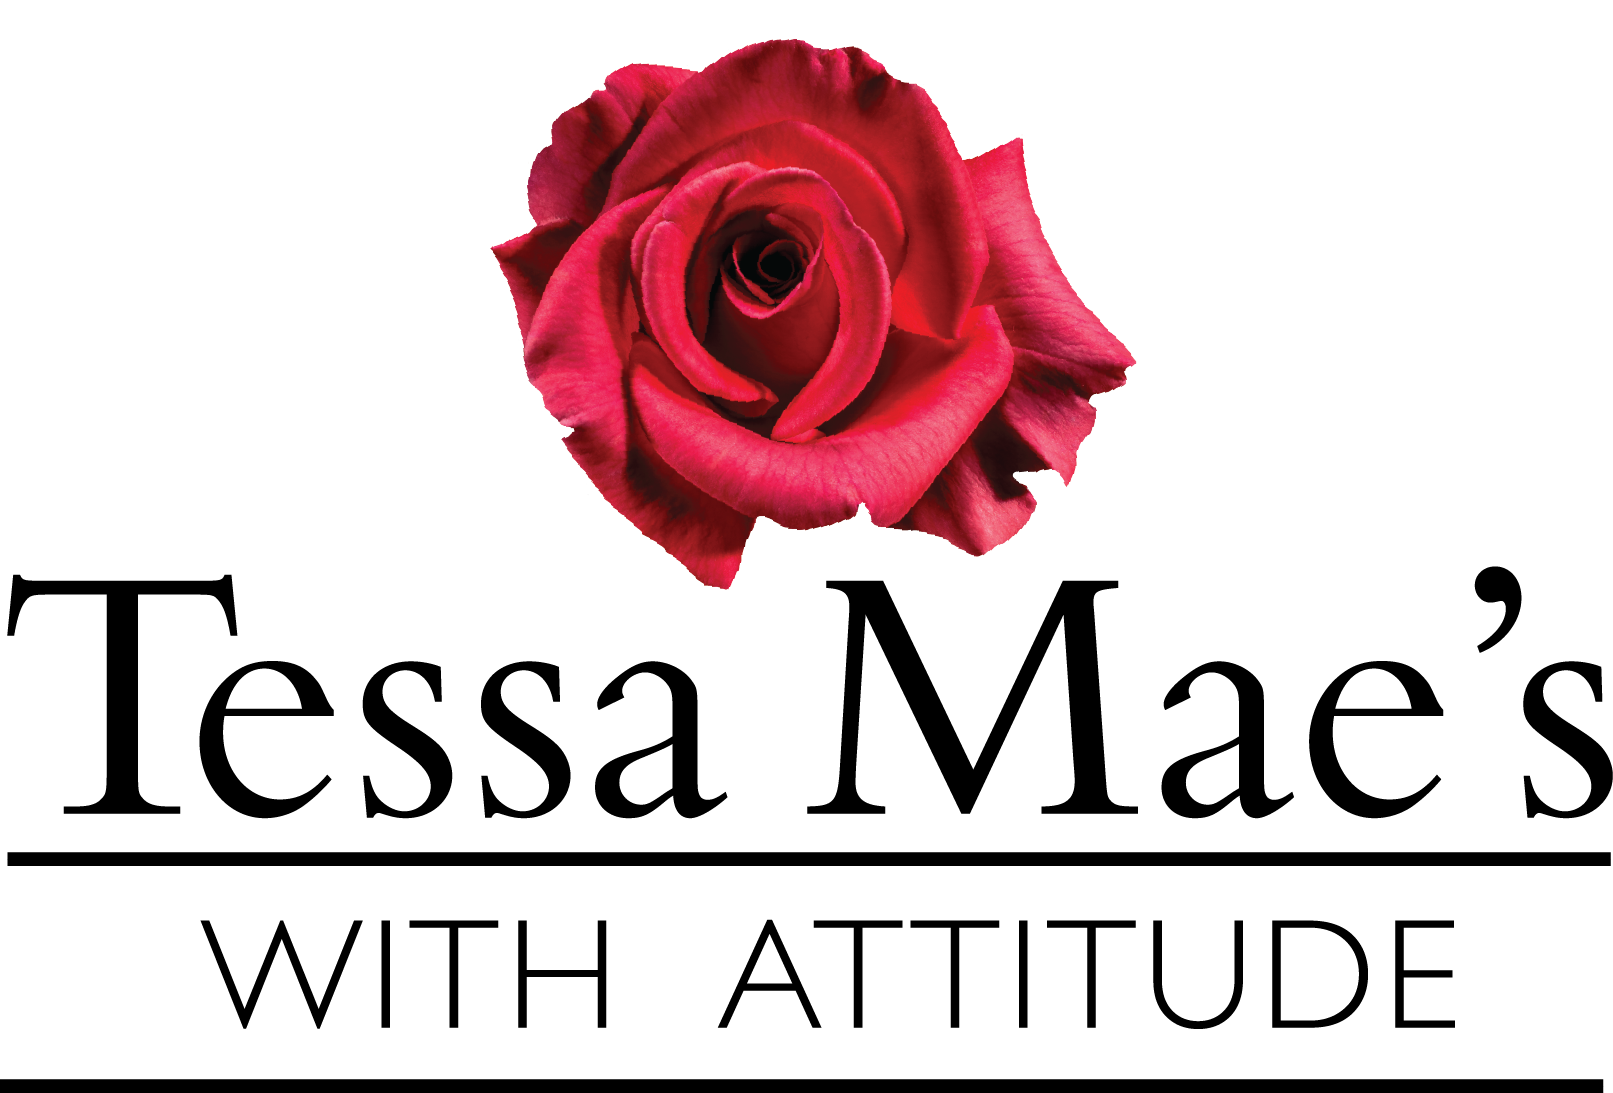 Gift Ideas-Ladies Gifts-Gifts Under $50 : Tessa Maes - Gifts and Homewares Boutique